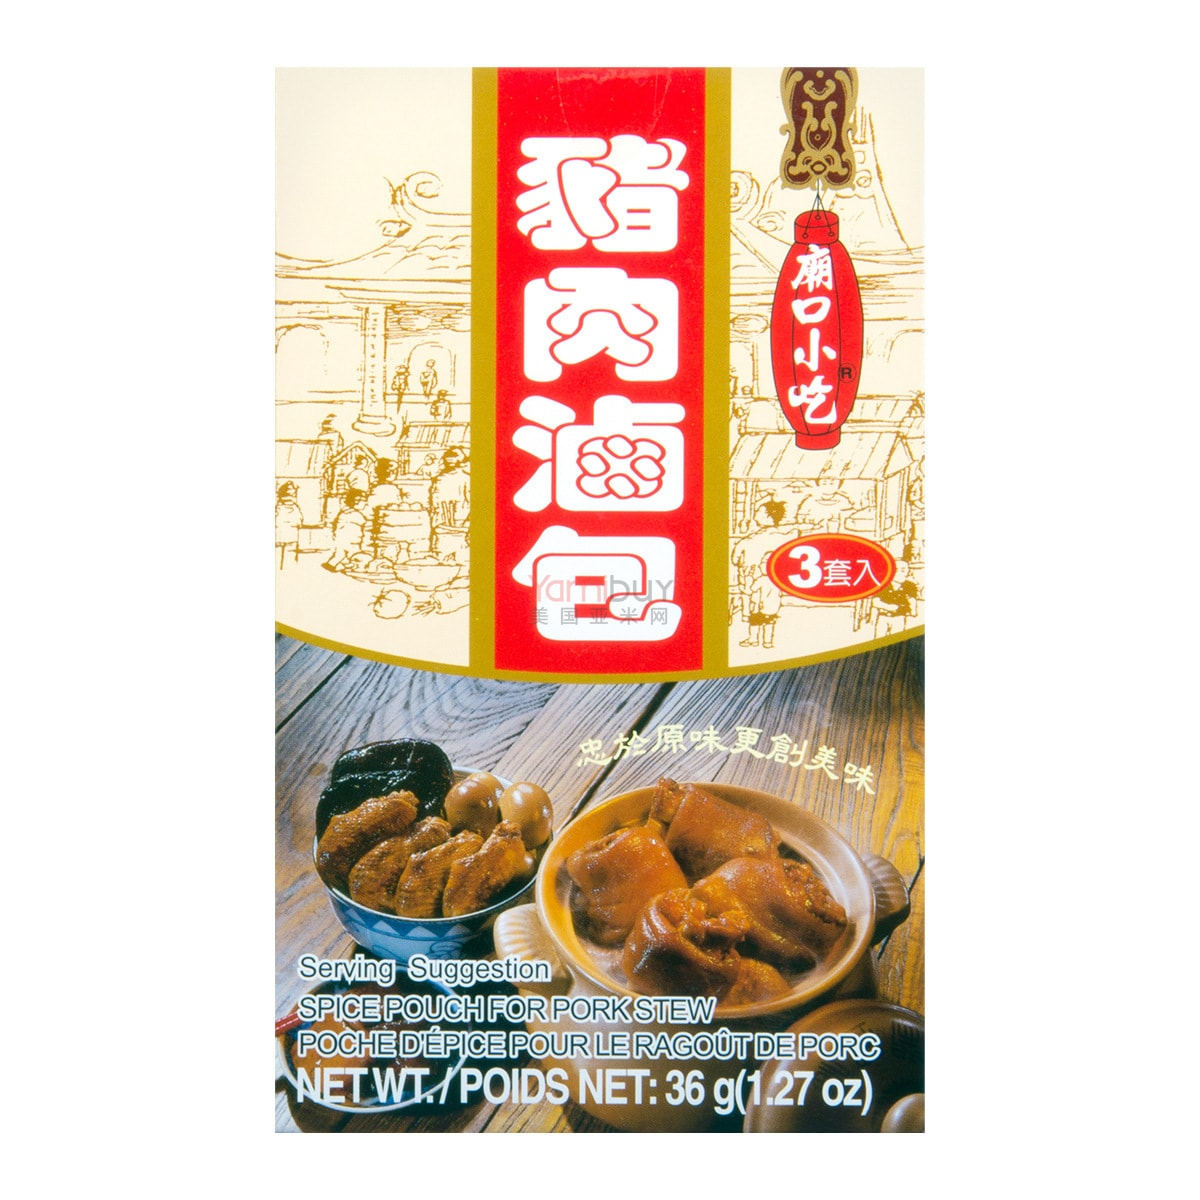 TOMAX Spice Pouch For Pork Stew 36g